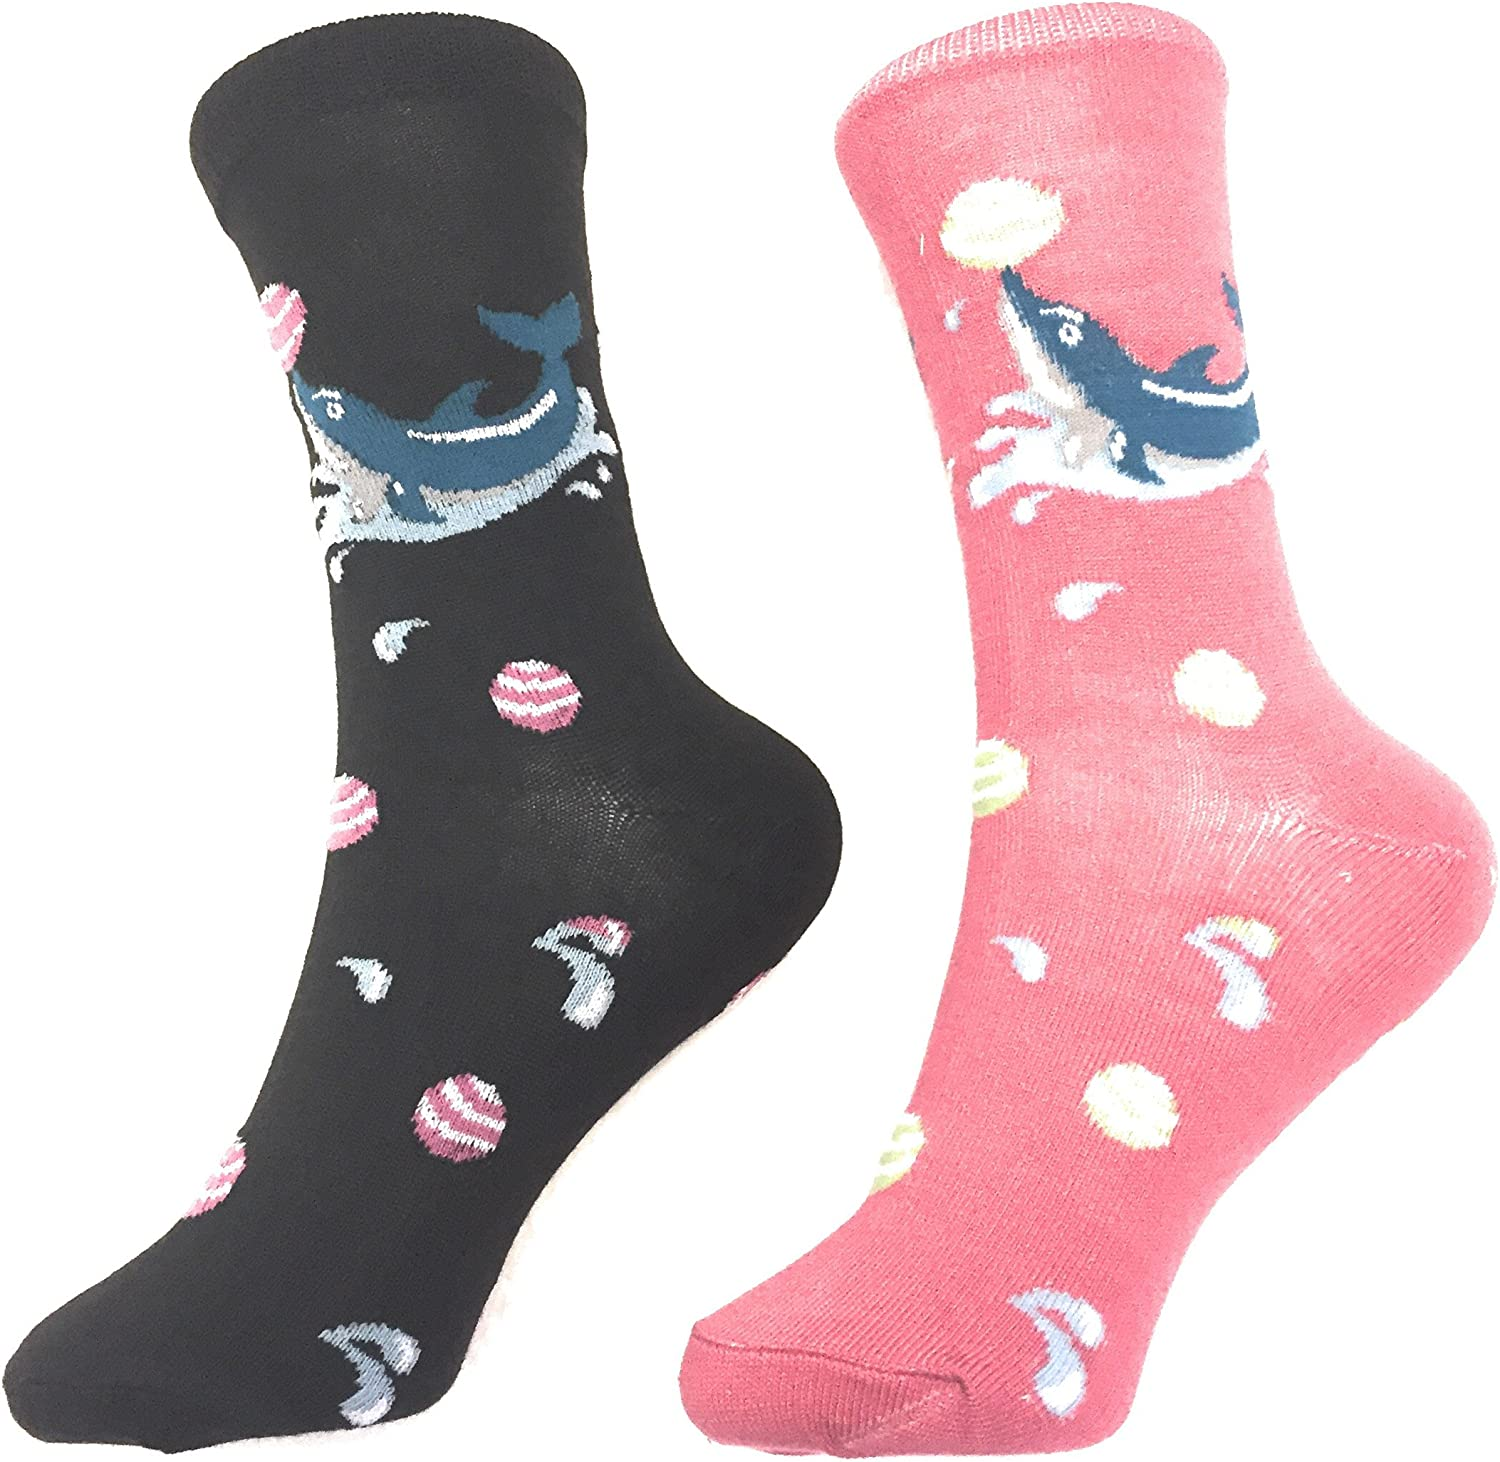 2 Pack Socks Dolphin Pattern Novelty Crew Socks Fun Fashion Casual Comfy Cozy (2 Pack)